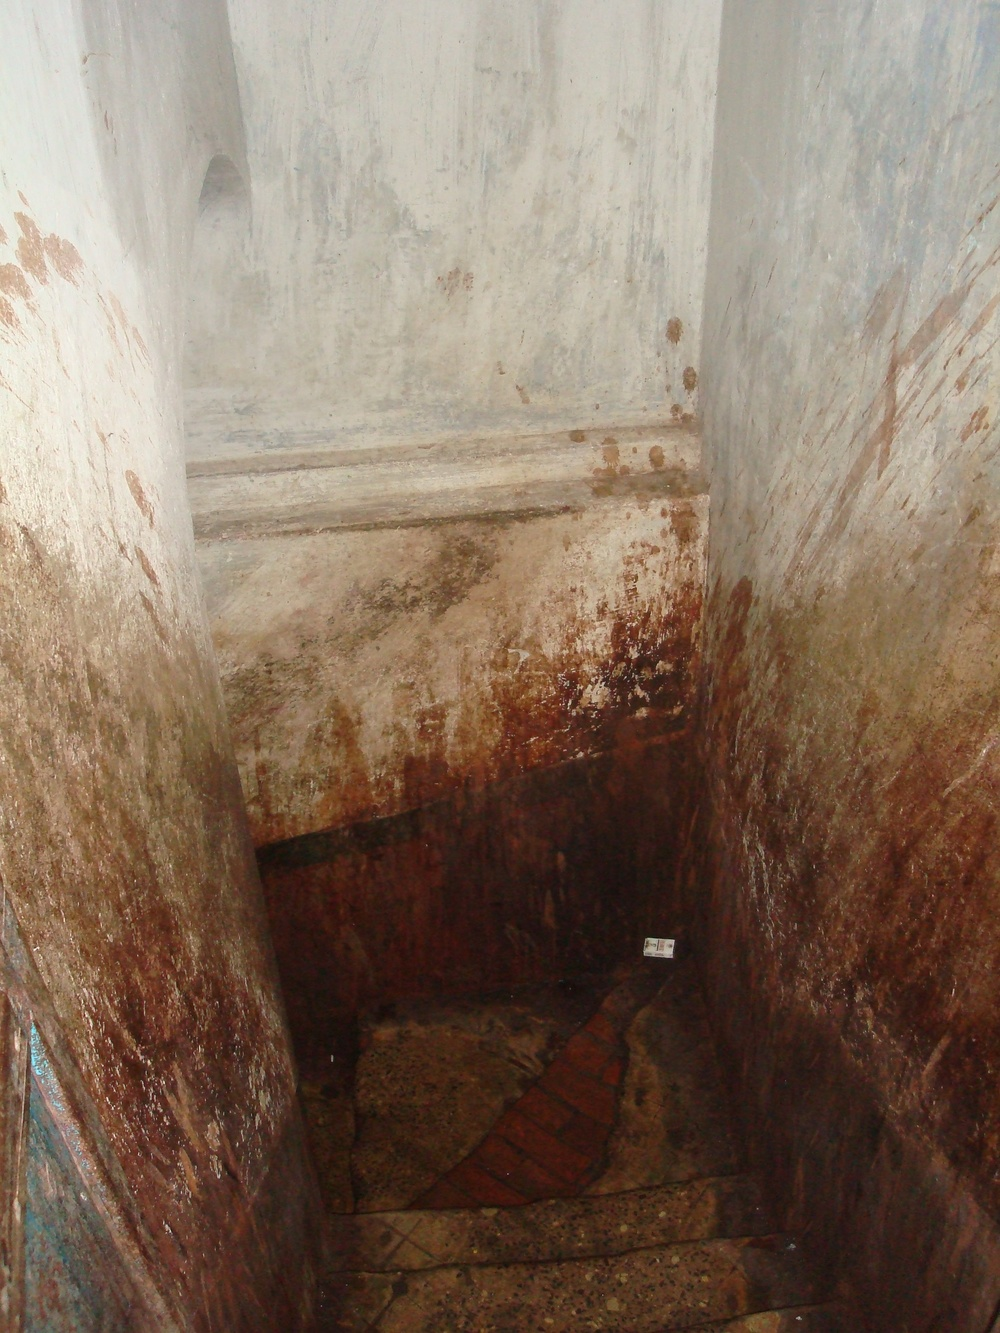 The stairwell of a brothel covered in spit and filth.